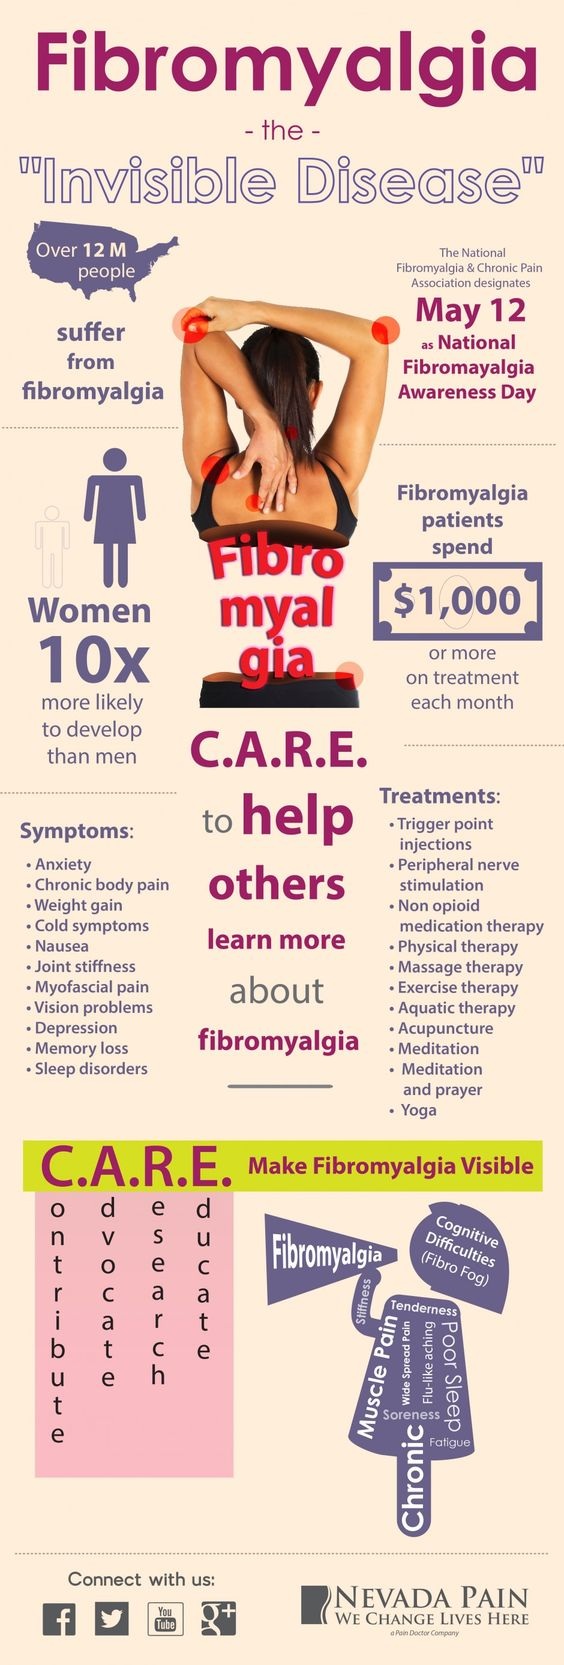 an understanding of the condition of fibromyalgia The truth is fibromyalgia is a real condition—the combination of pain all over that gets worse after exercise and at night, stiffness, fatigue, poor sleep, trouble with memory and.